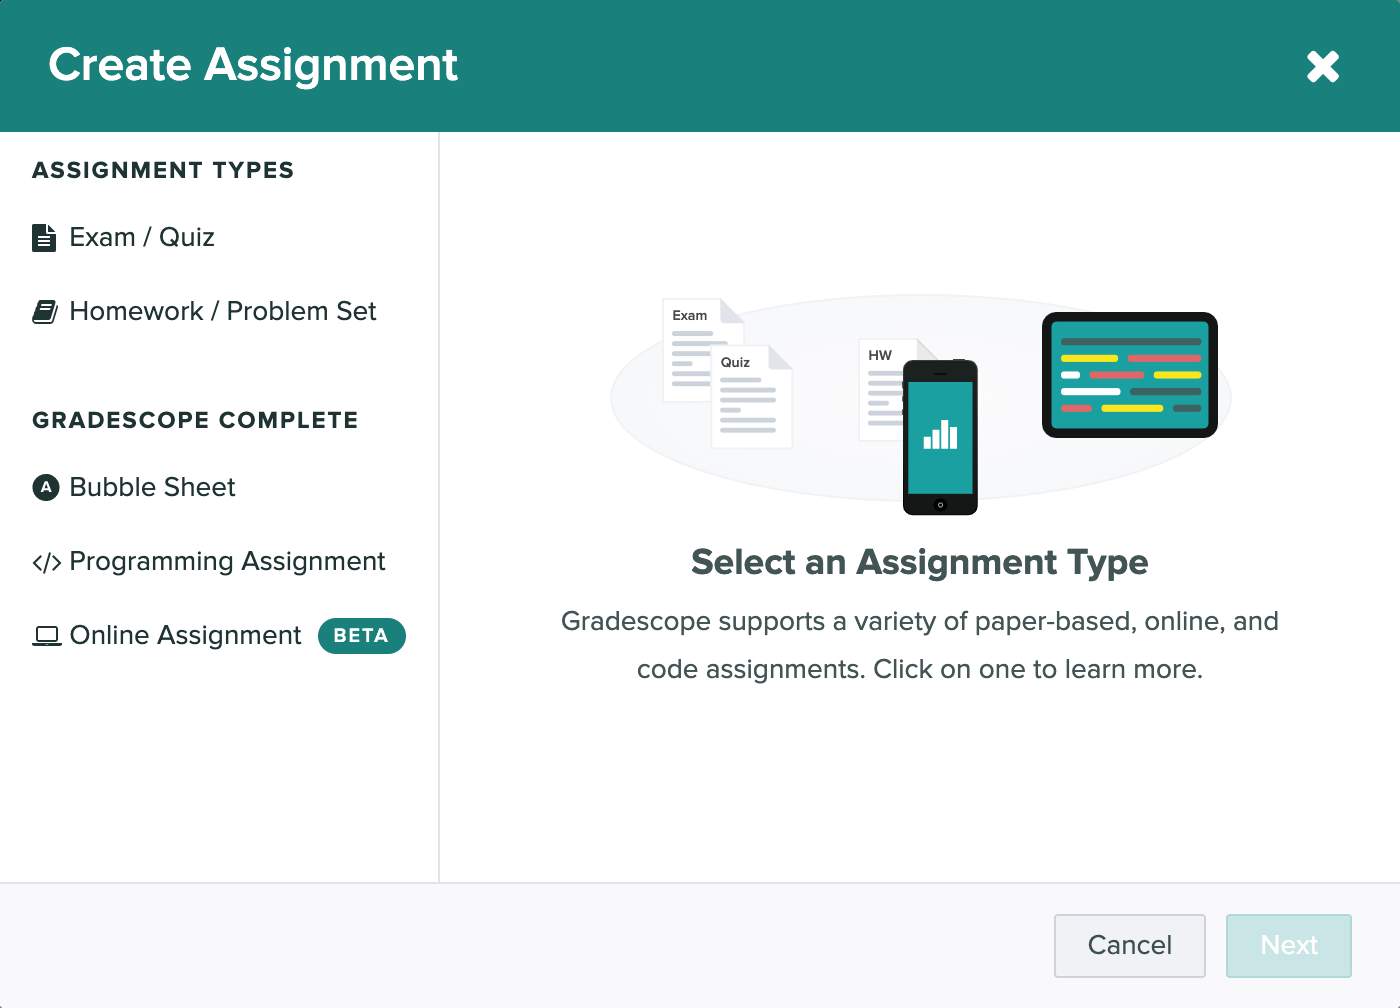 The Create Assignment modal showing off all the assignment types on Gradescope.